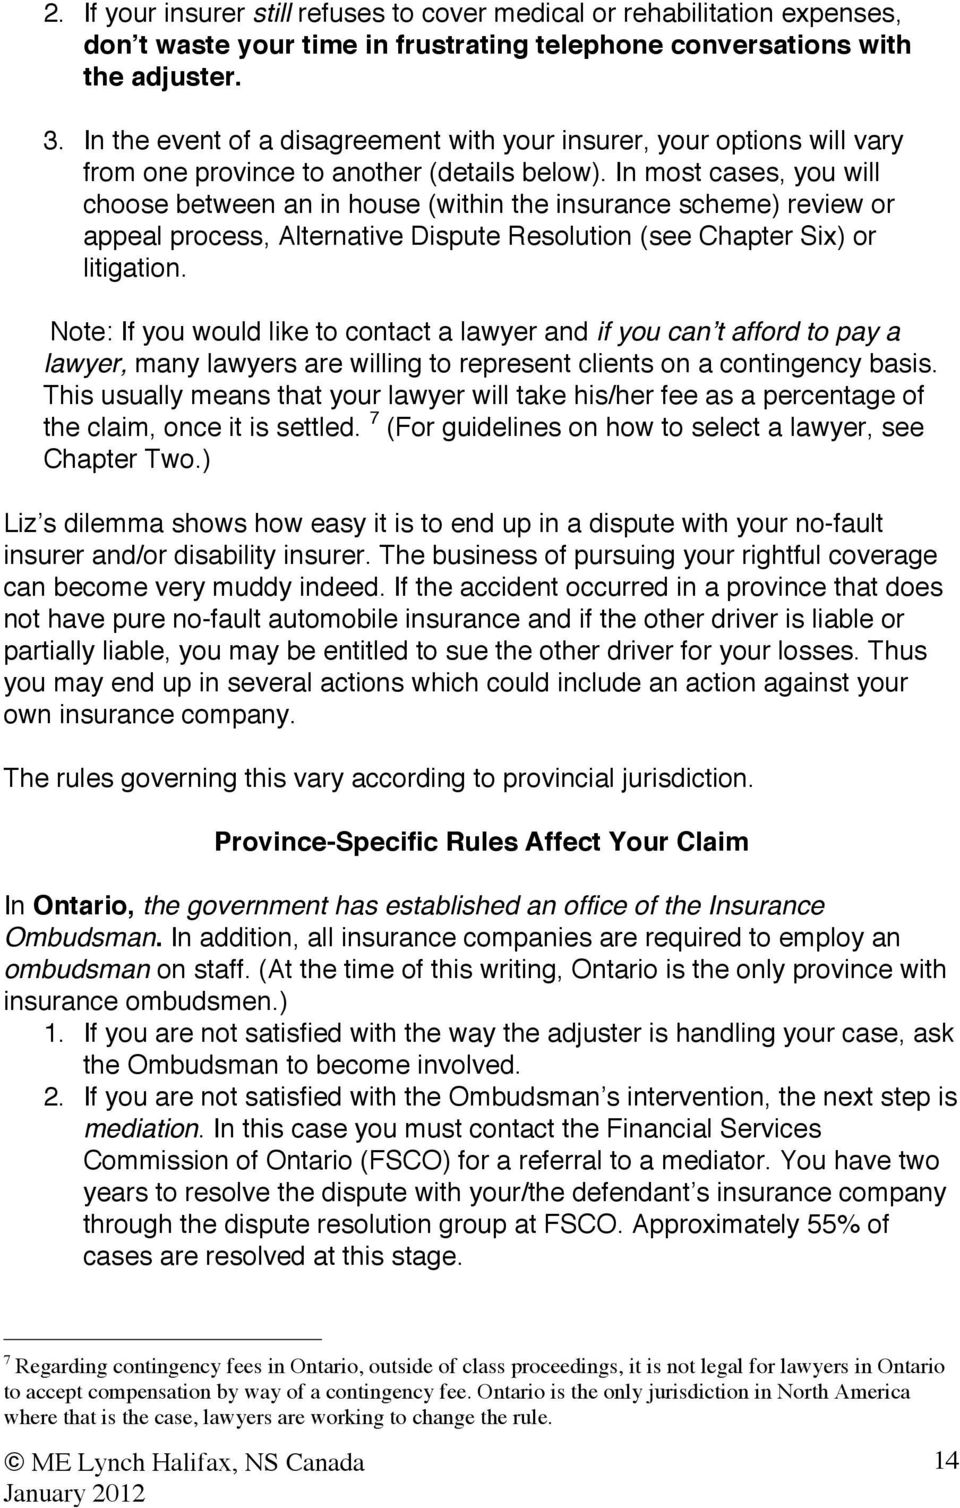 In most cases, you will choose between an in house (within the insurance scheme) review or appeal process, Alternative Dispute Resolution (see Chapter Six) or litigation.